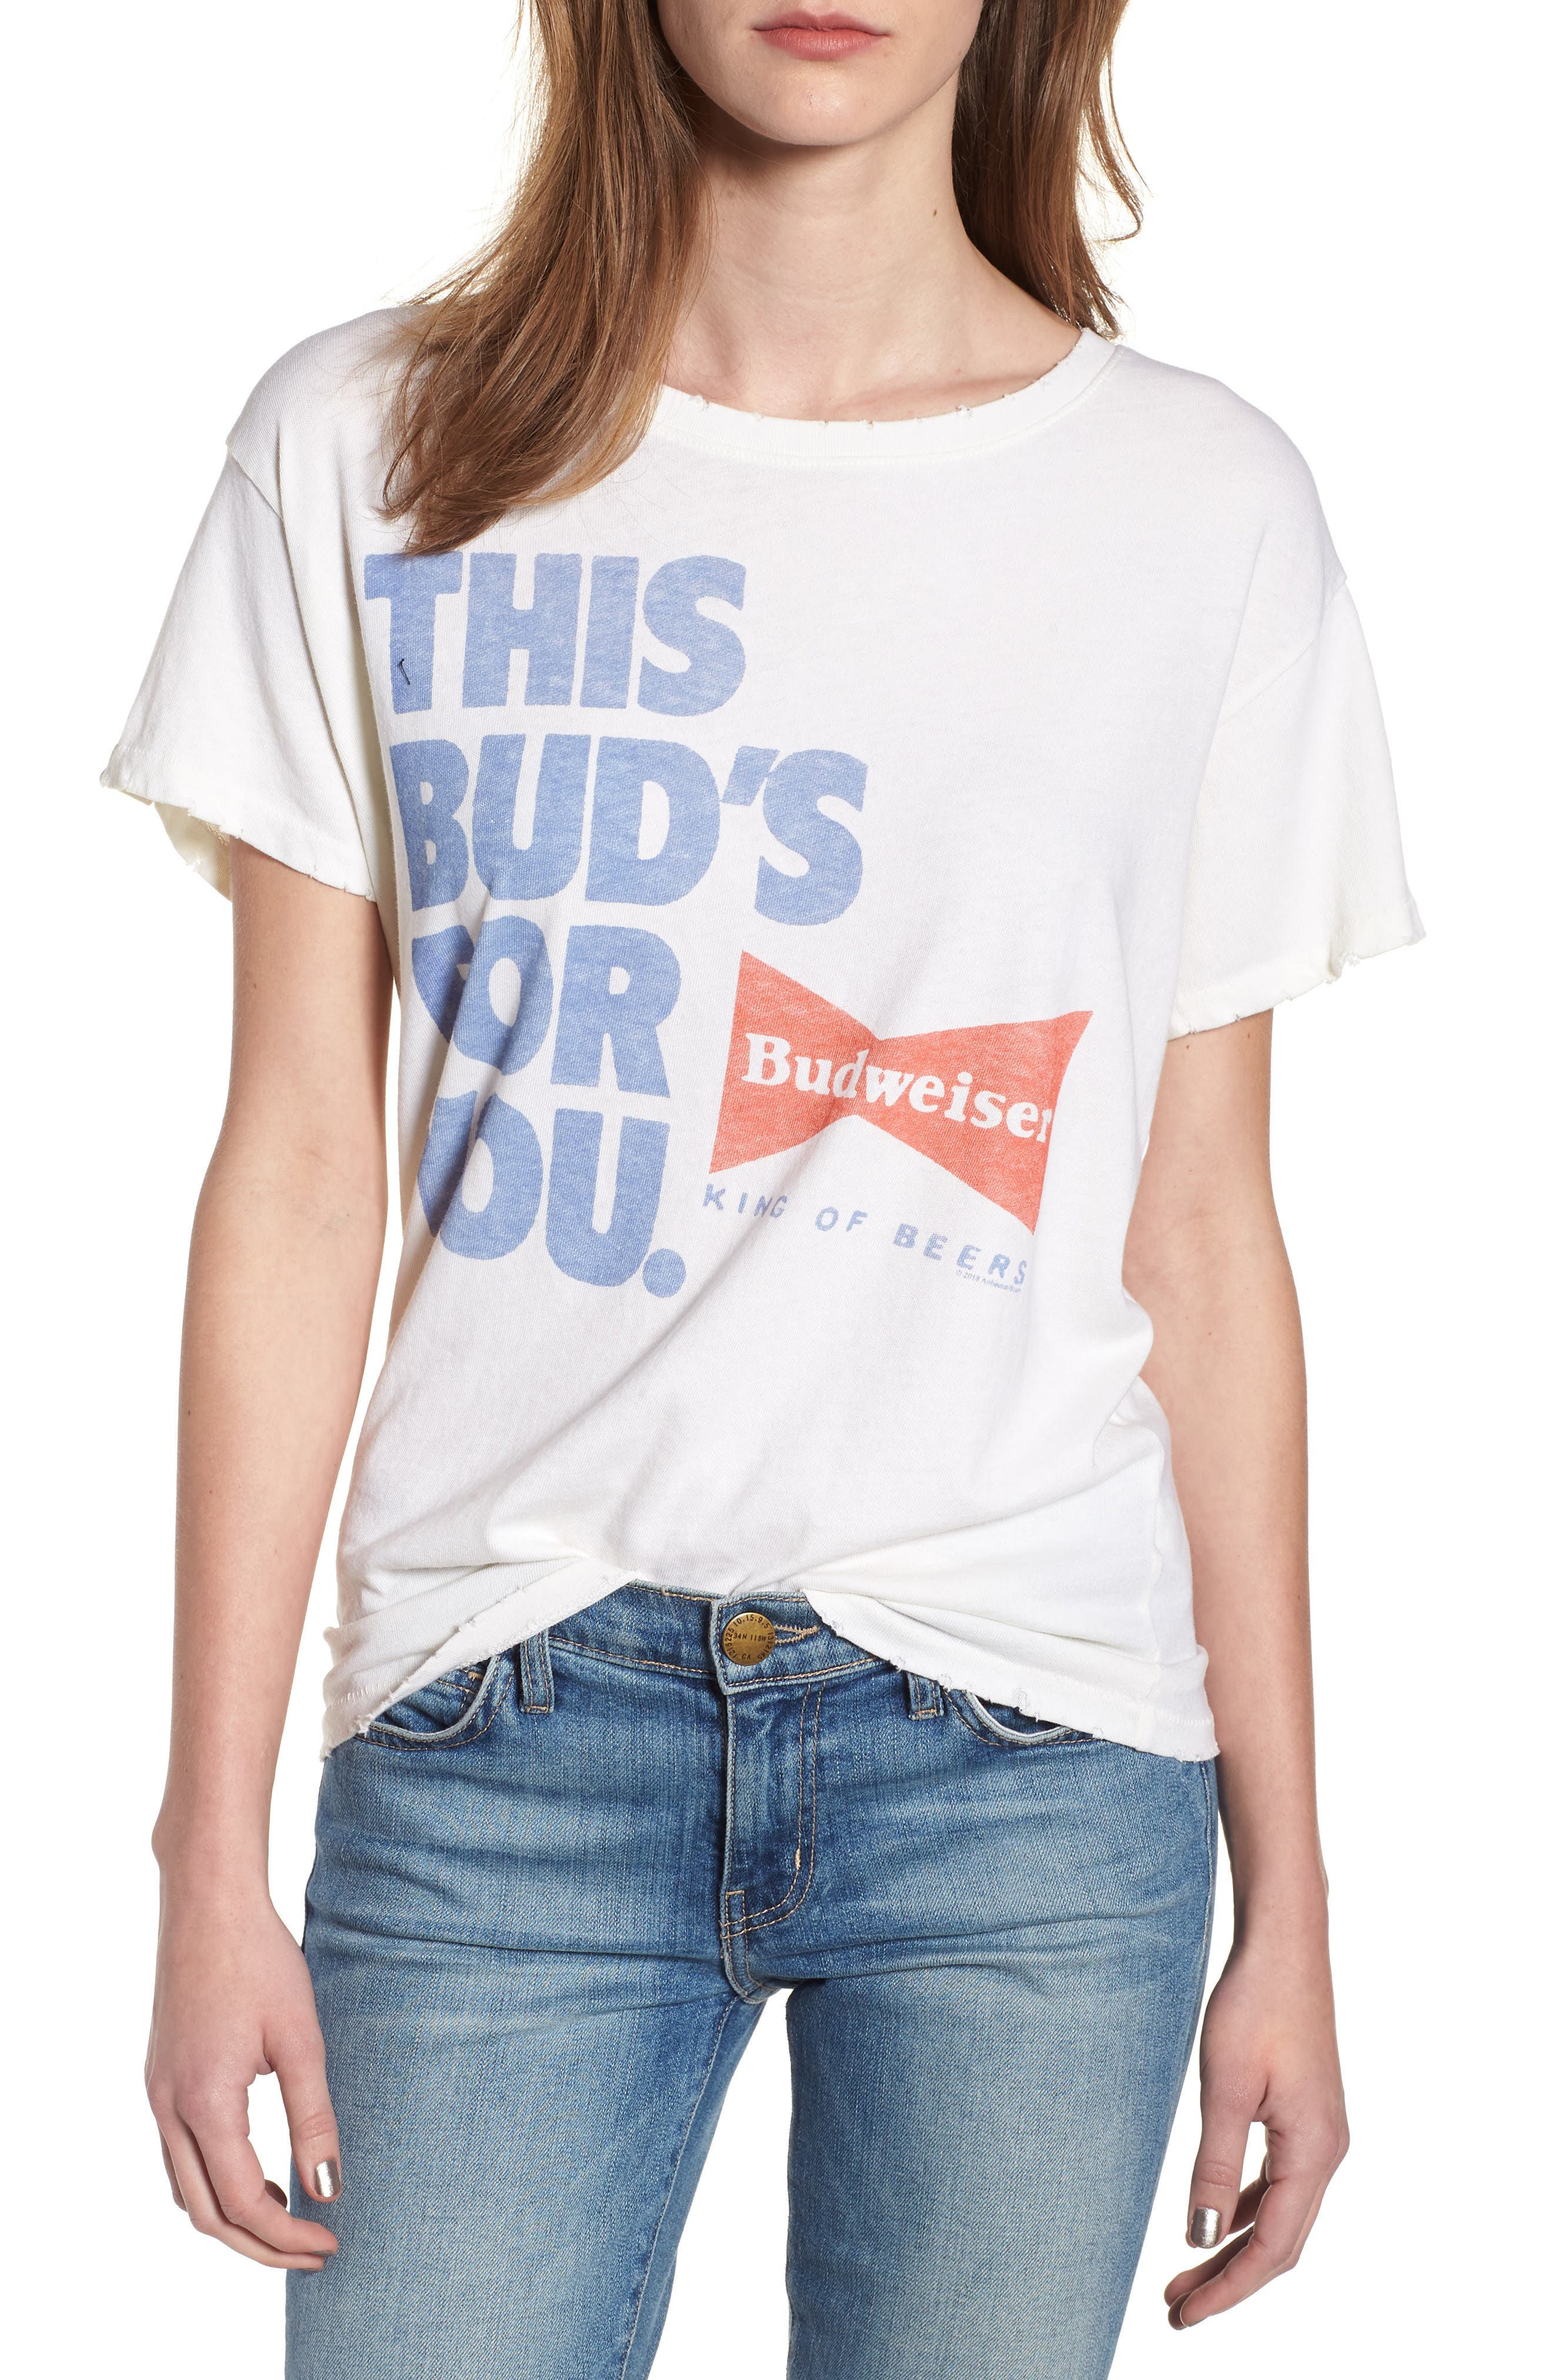 Bud for You Tee,                             Main thumbnail 1, color,                             Vintage White